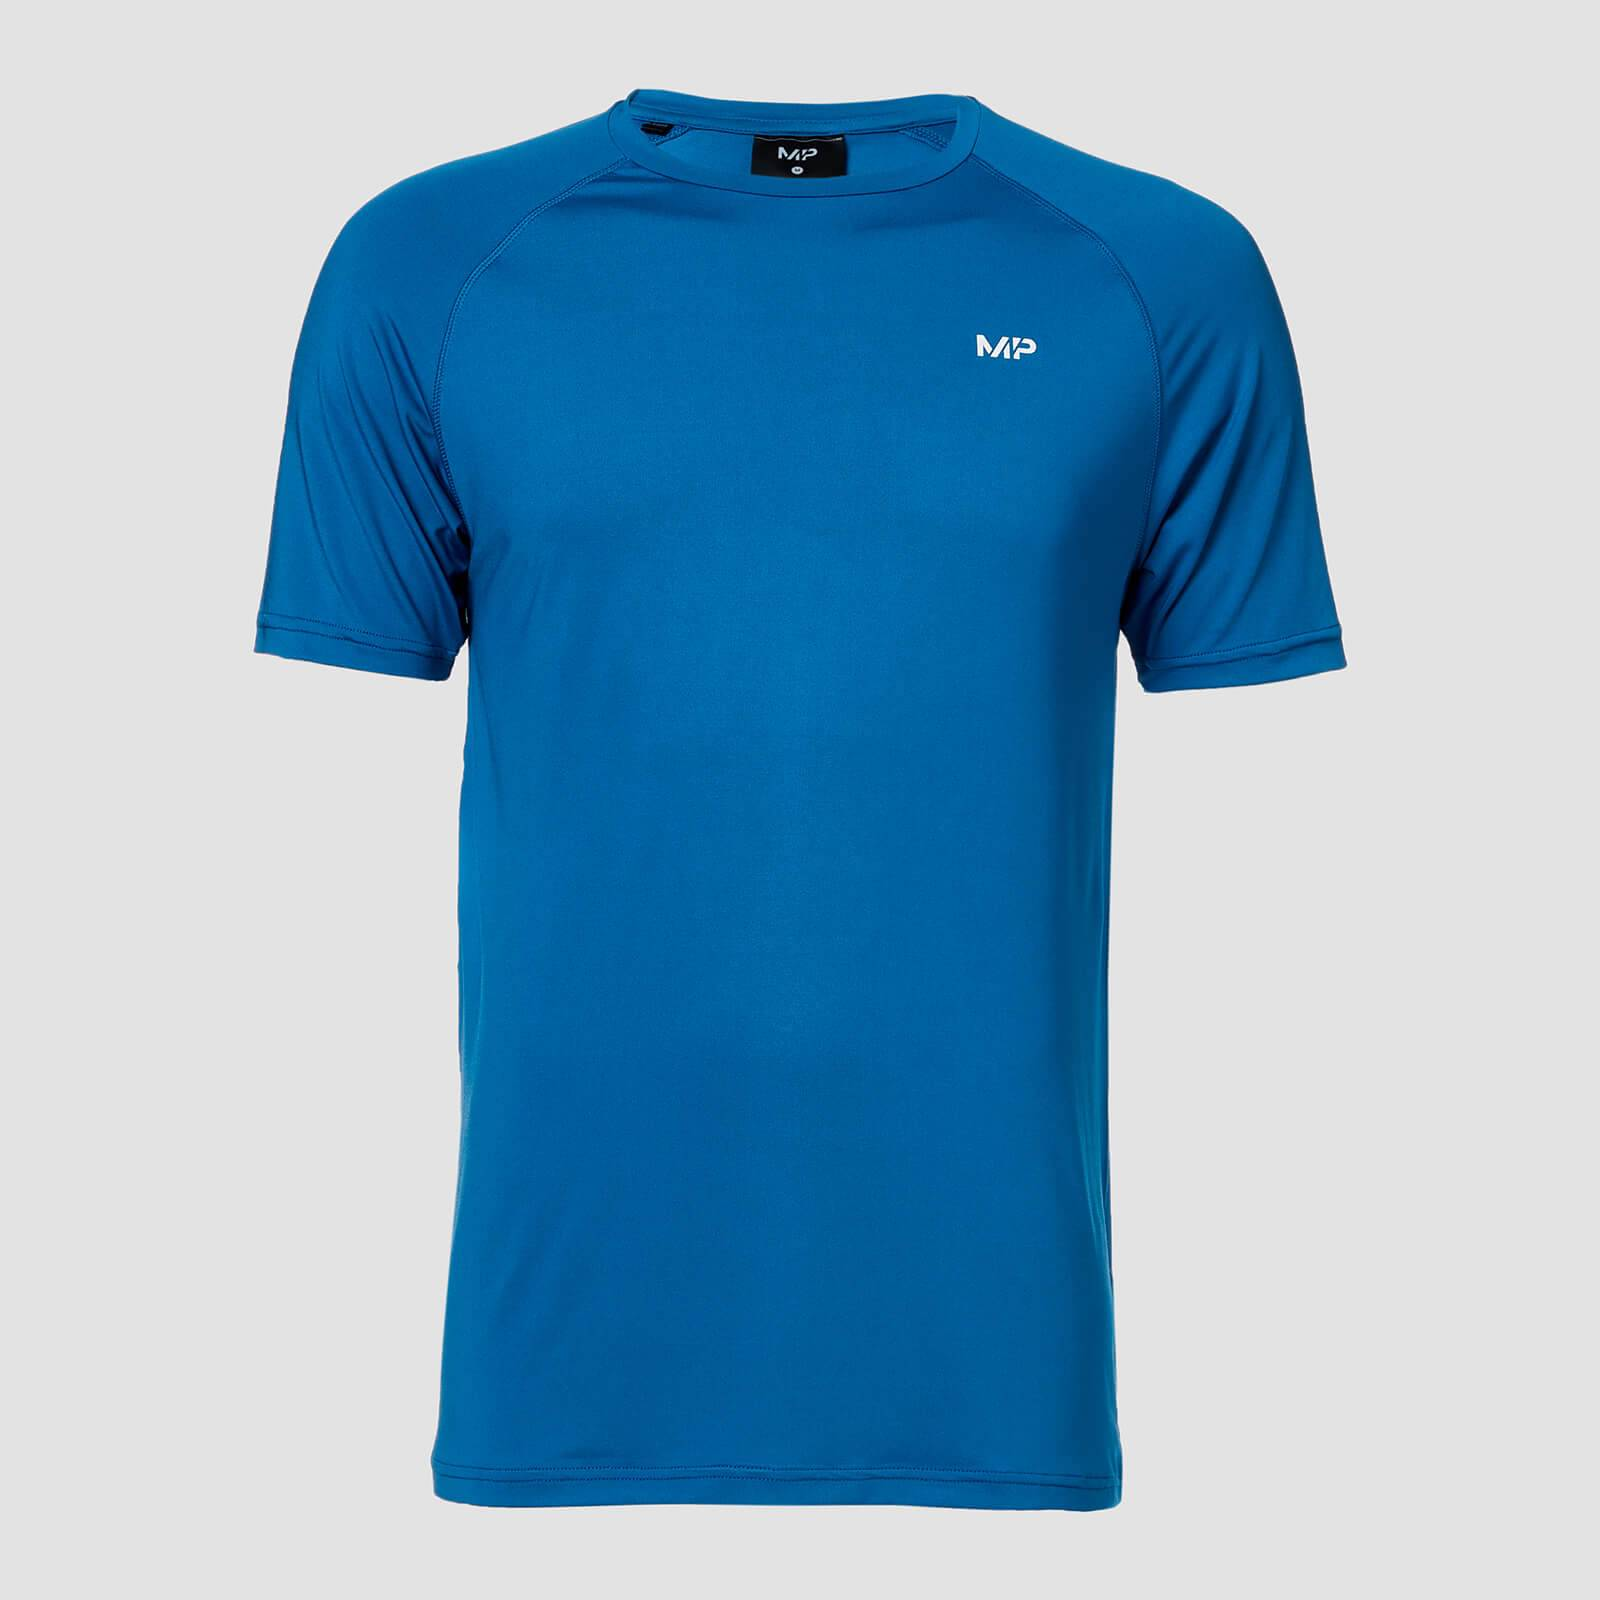 Myprotein T-shirt sportiva MP Essentials da uomo  - Pilot Blue - S